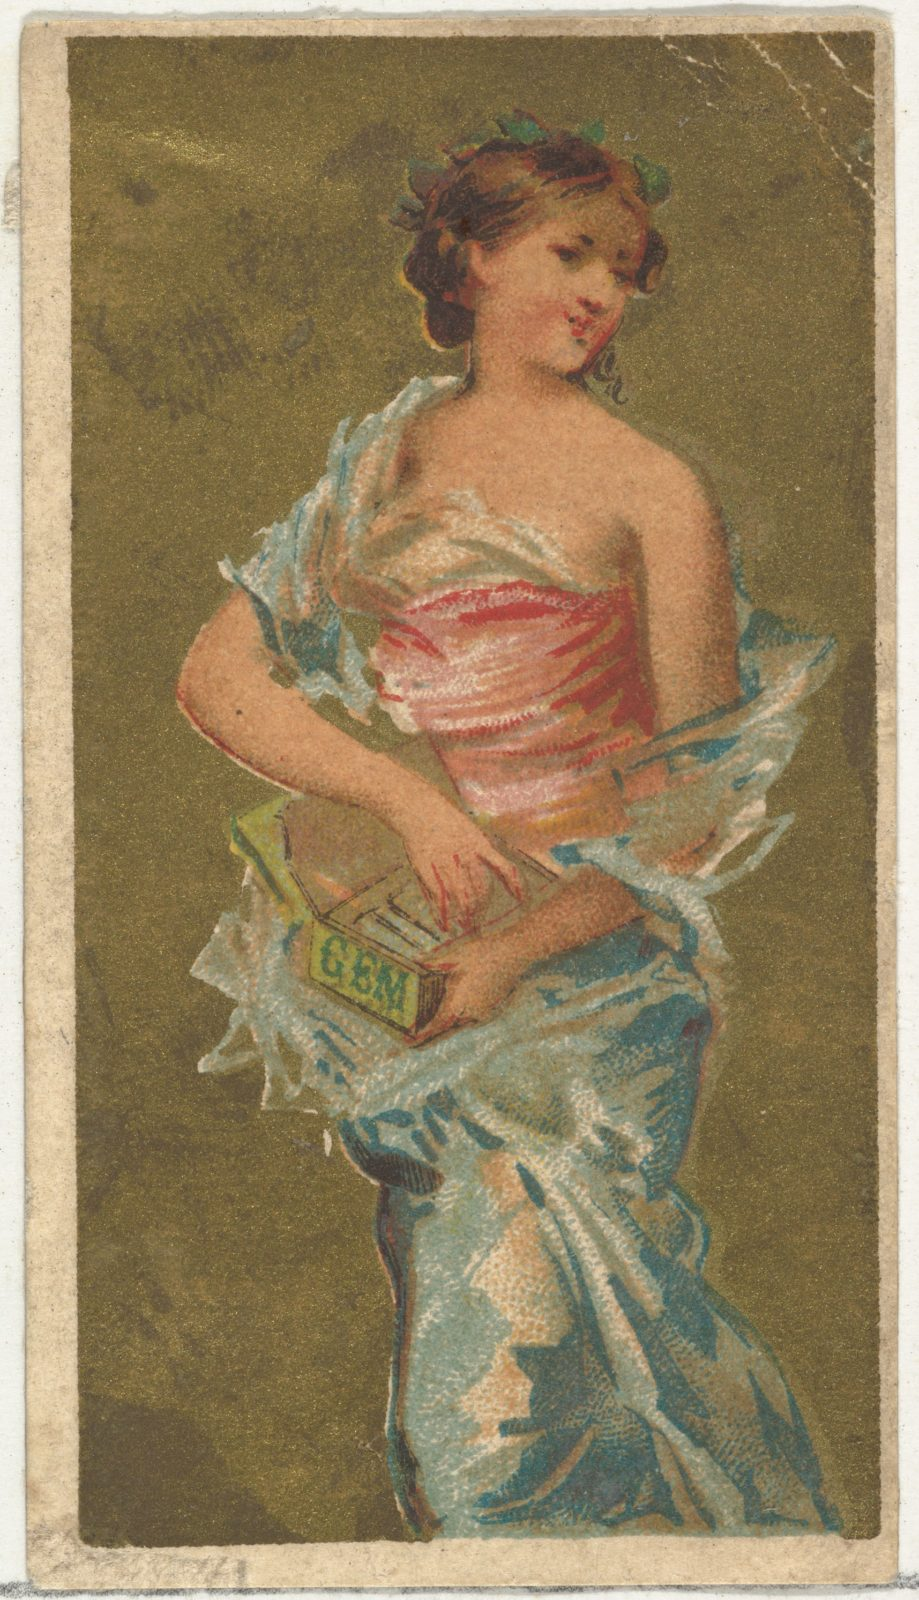 From the Girls and Children series (N65) promoting Richmond Gem Cigarettes for Allen & Ginter brand tobacco products